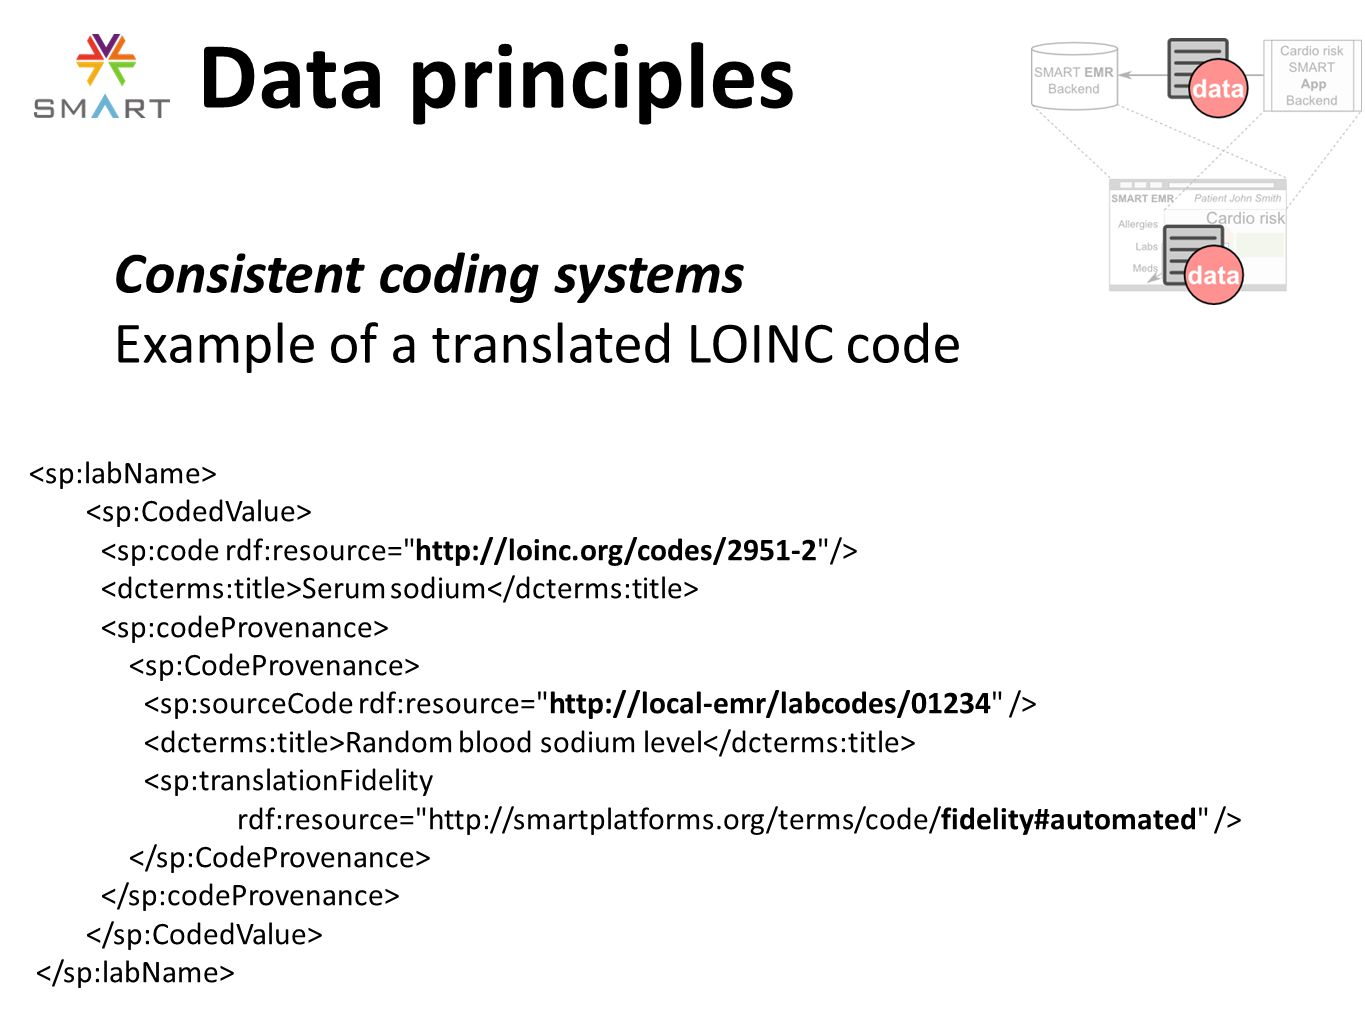 Data principles Consistent coding systems Example of a translated LOINC code Medications: RxNorm (SCD, SBD) Problems: SNOMED CT Labs: LOINC Containers may need to translate from other terminologies, with provenance Serum sodium Random blood sodium level <sp:translationFidelity rdf:resource= http://smartplatforms.org/terms/code/fidelity#automated />